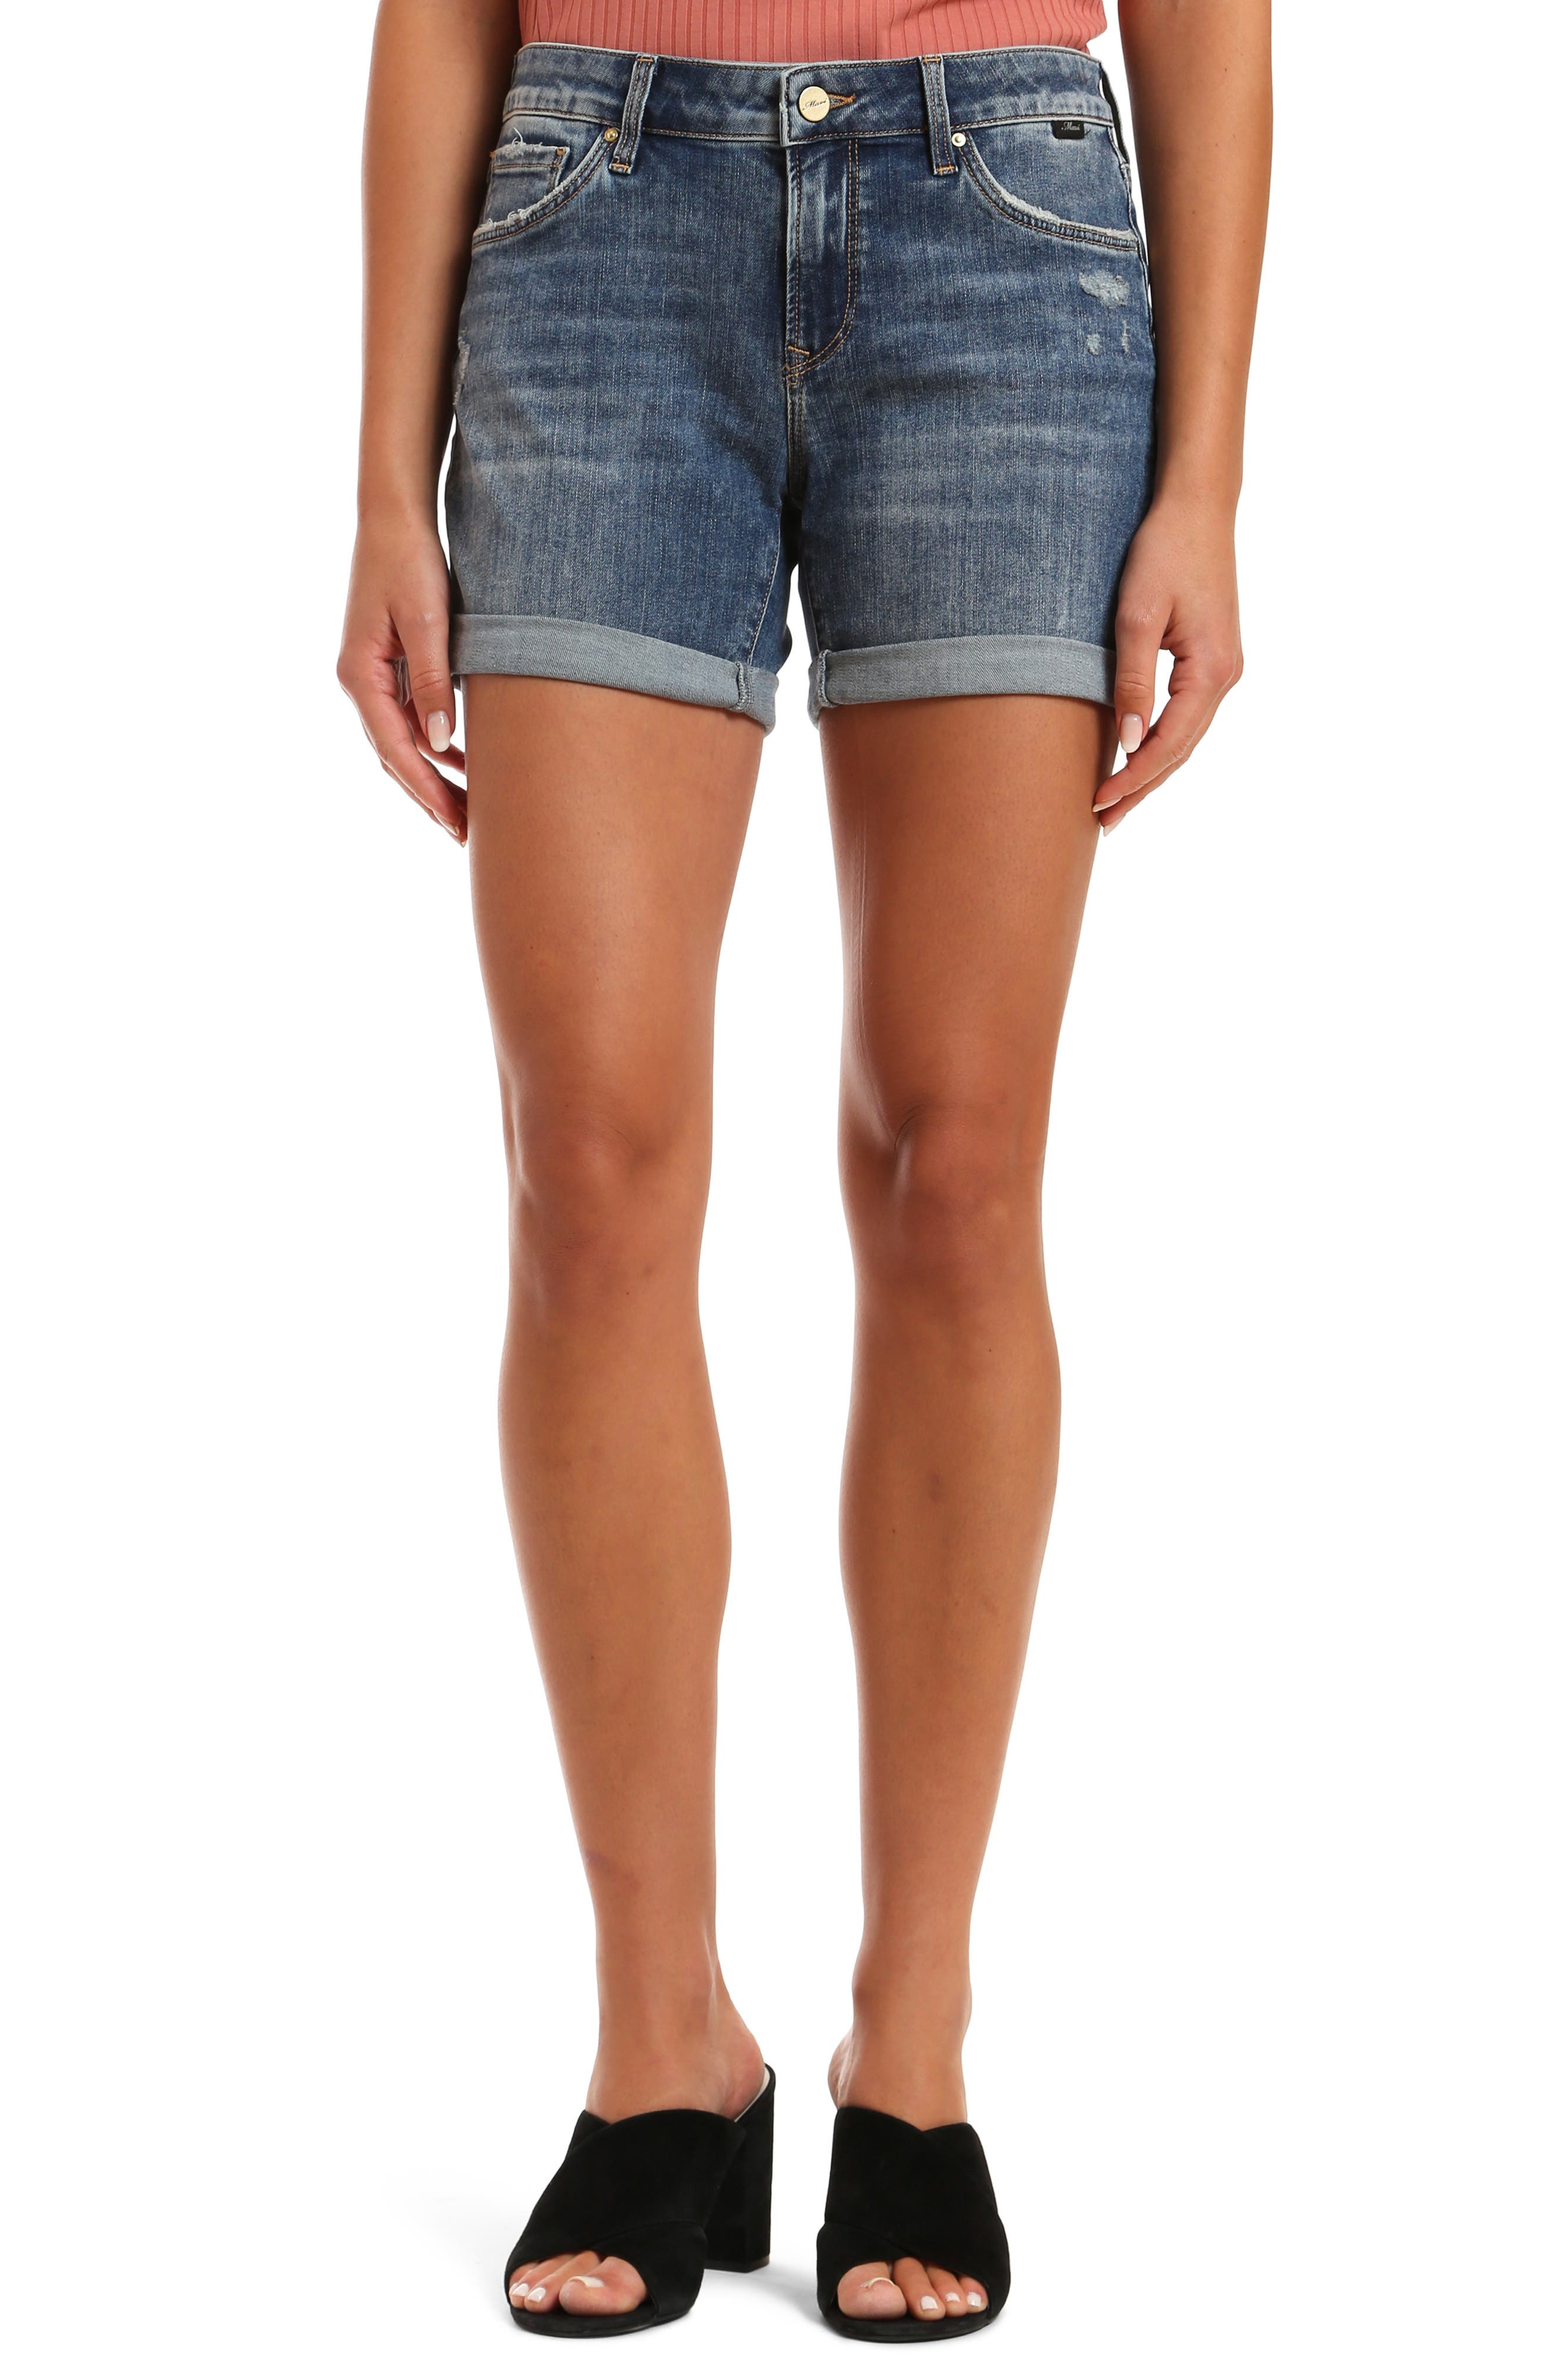 Cuffed denim shorts earn their casual cool status with dashes of destruction and a perfectly faded wash. Style Name: Mavi Jeans Pixie Rolled Hem Denim Shorts (Mid Ripped Vintage). Style Number: 5999168. Available in stores.